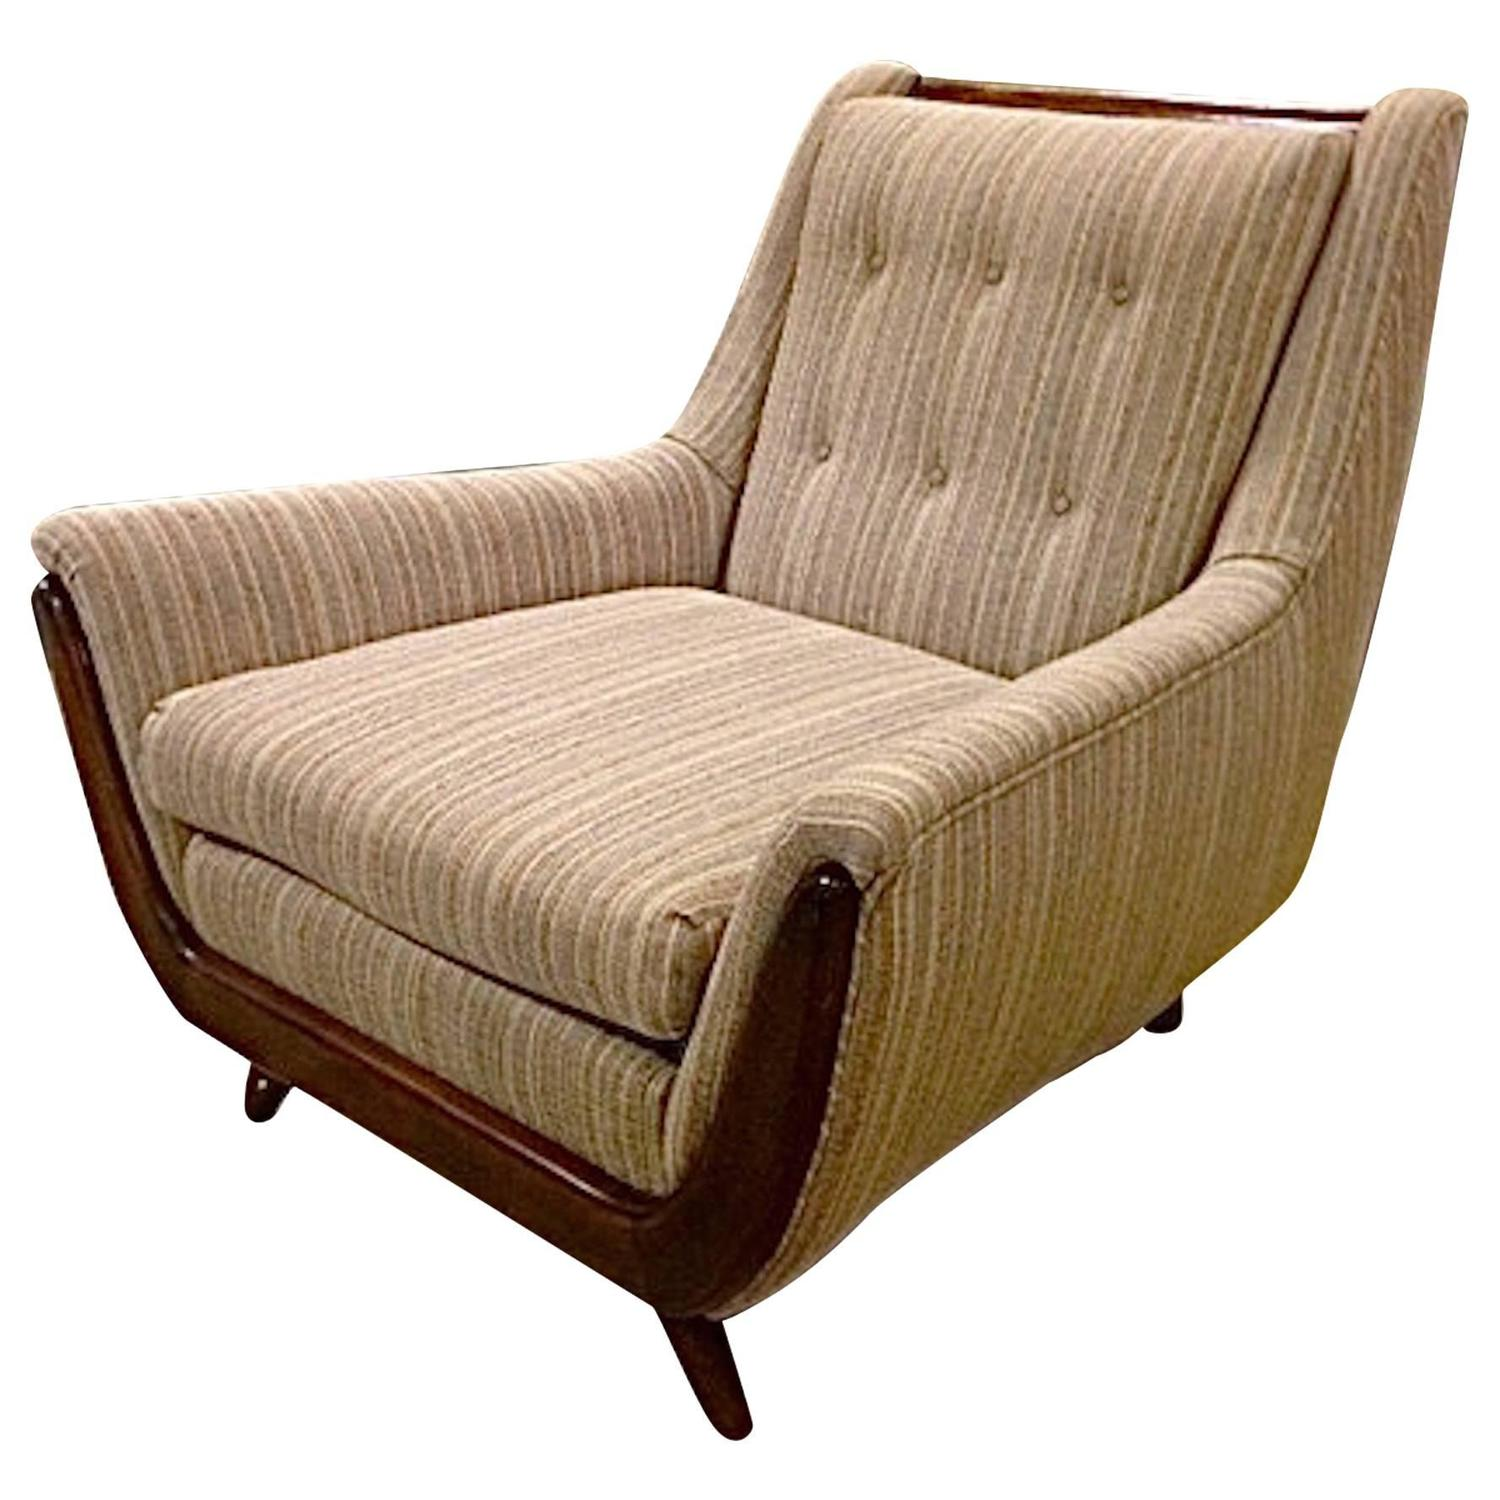 Handsome Club Chair with Walnut Trim in the style of Adrian